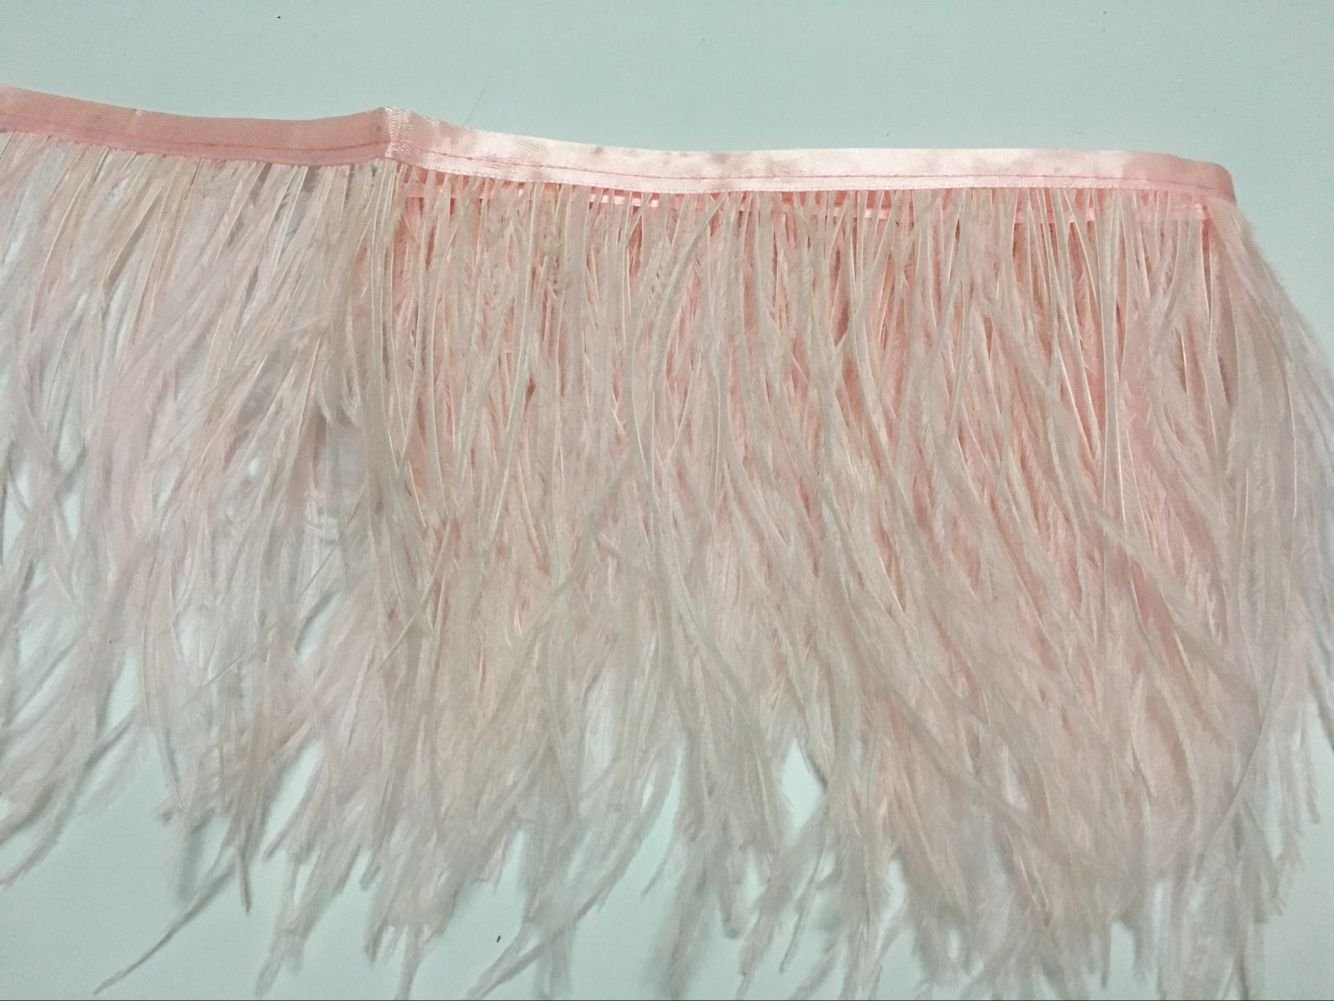 KOLIGHT Pack of 10 Yards Natural Dyed Ostrich Feathers Trim Fringe 4~5inch for DIY Dress Sewing Crafts Costumes Decoration Pink